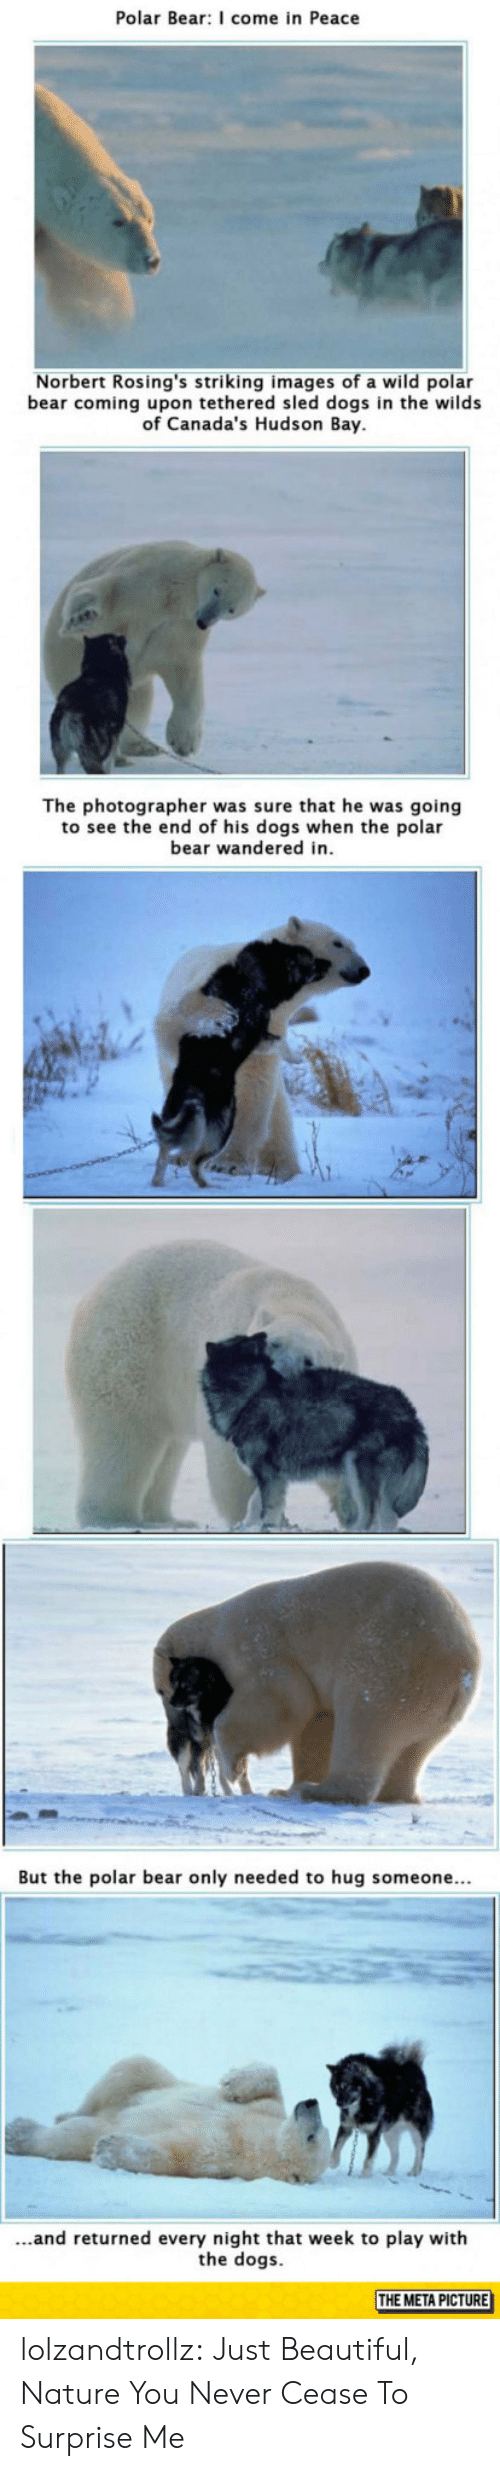 wilds: Polar Bear: I come in Peace  Norbert Rosing's striking images of a wild polar  bear coming upon tethered sled dogs in the wilds  of Canada's Hudson Bay  The photographer was sure that he was going  to see the end of his dogs when the polar  bear wandered in  But the polar bear only needed to hug someone...  ...and returned every night that week to play with  the dogs  THE META PICTURE lolzandtrollz:  Just Beautiful, Nature You Never Cease To Surprise Me